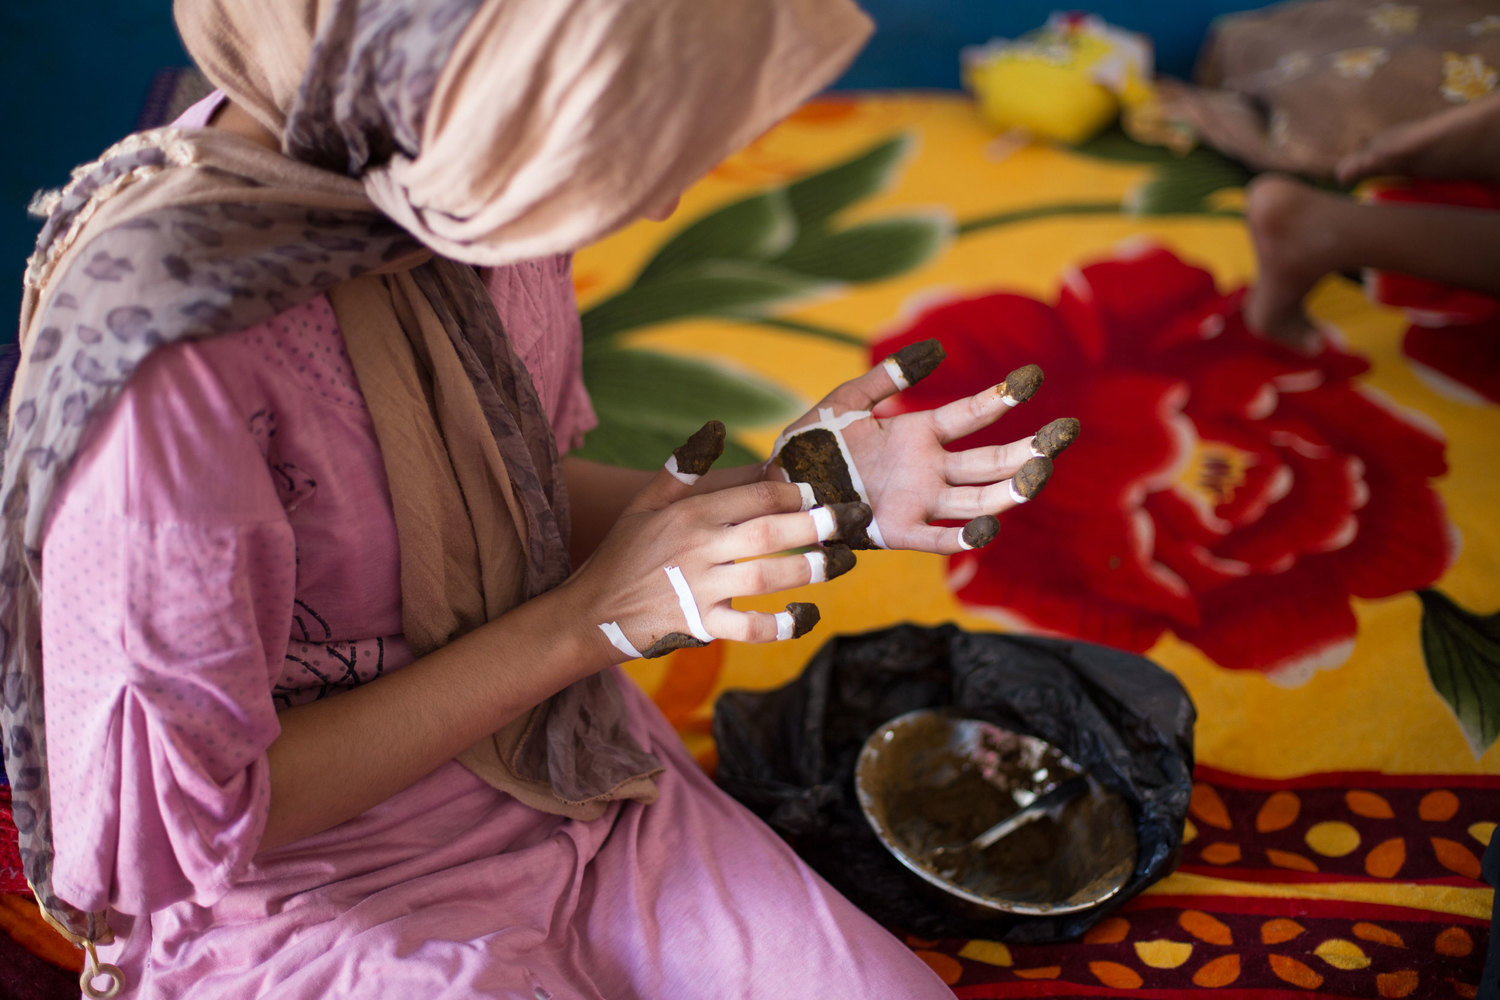 Noha applies henna to her hands in preparation for her engagement, on Seheil Island.